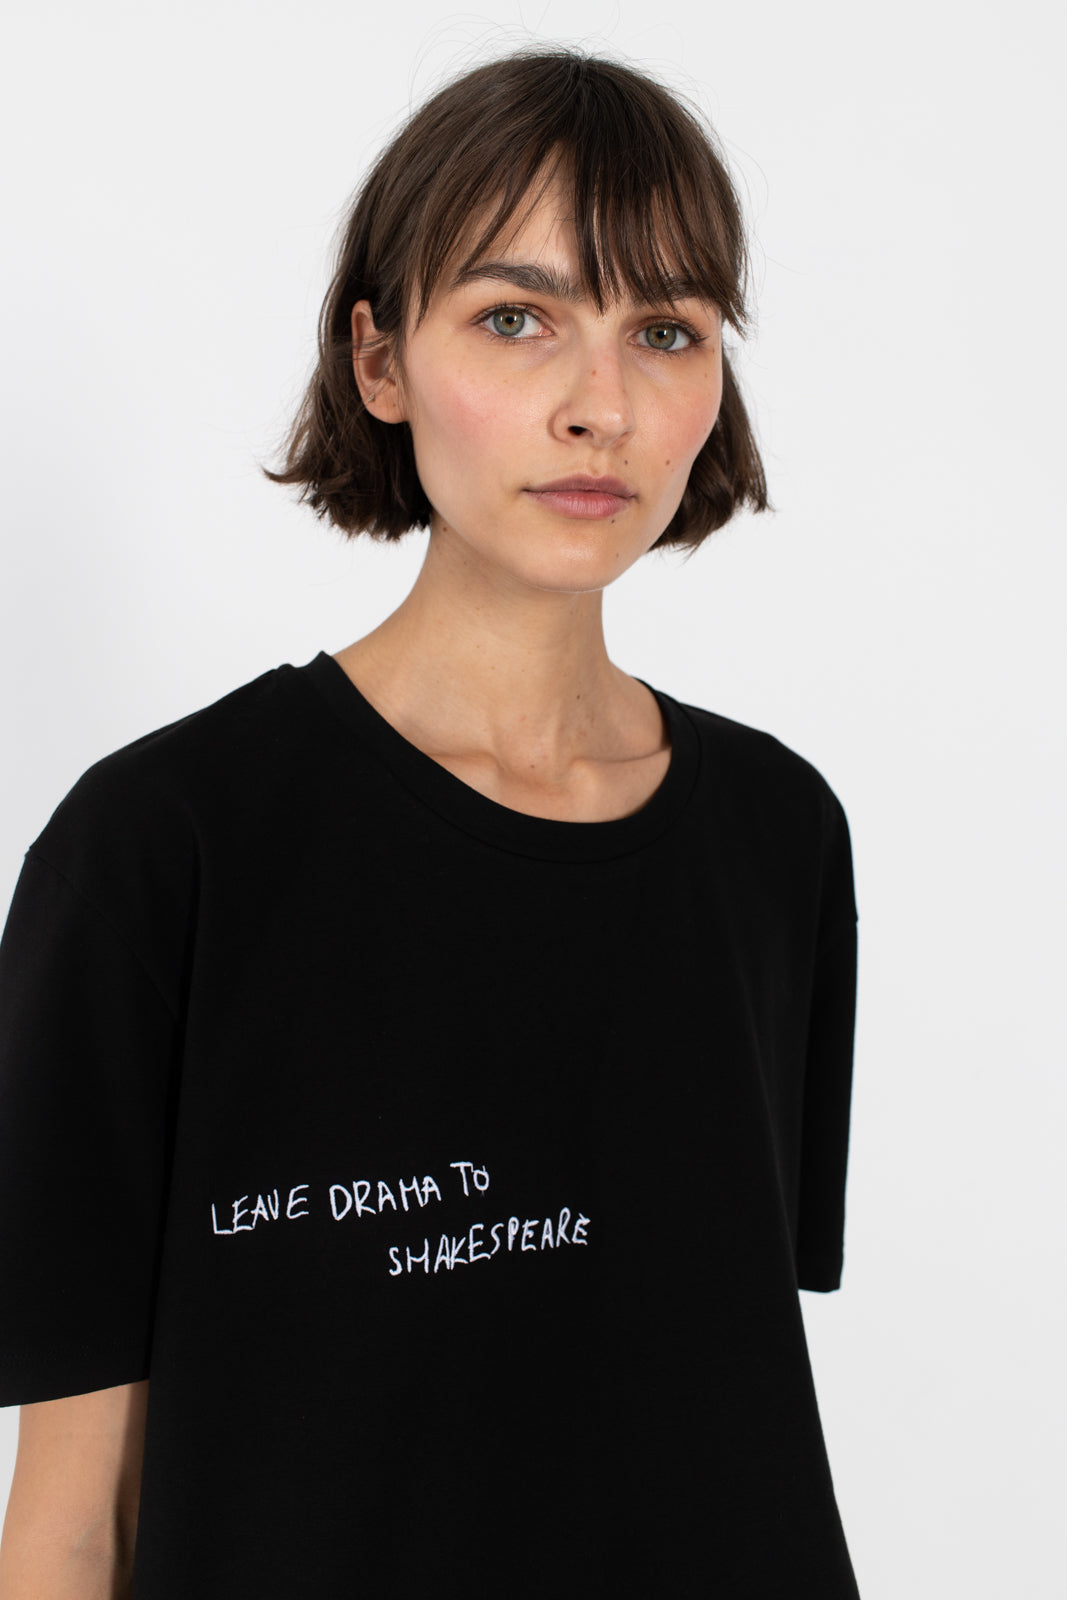 SHAKESPEARE-Black-oversize-tshirt-leave-drama-to-shakespeare-le-slap-logo-cotton-clothing.jpg